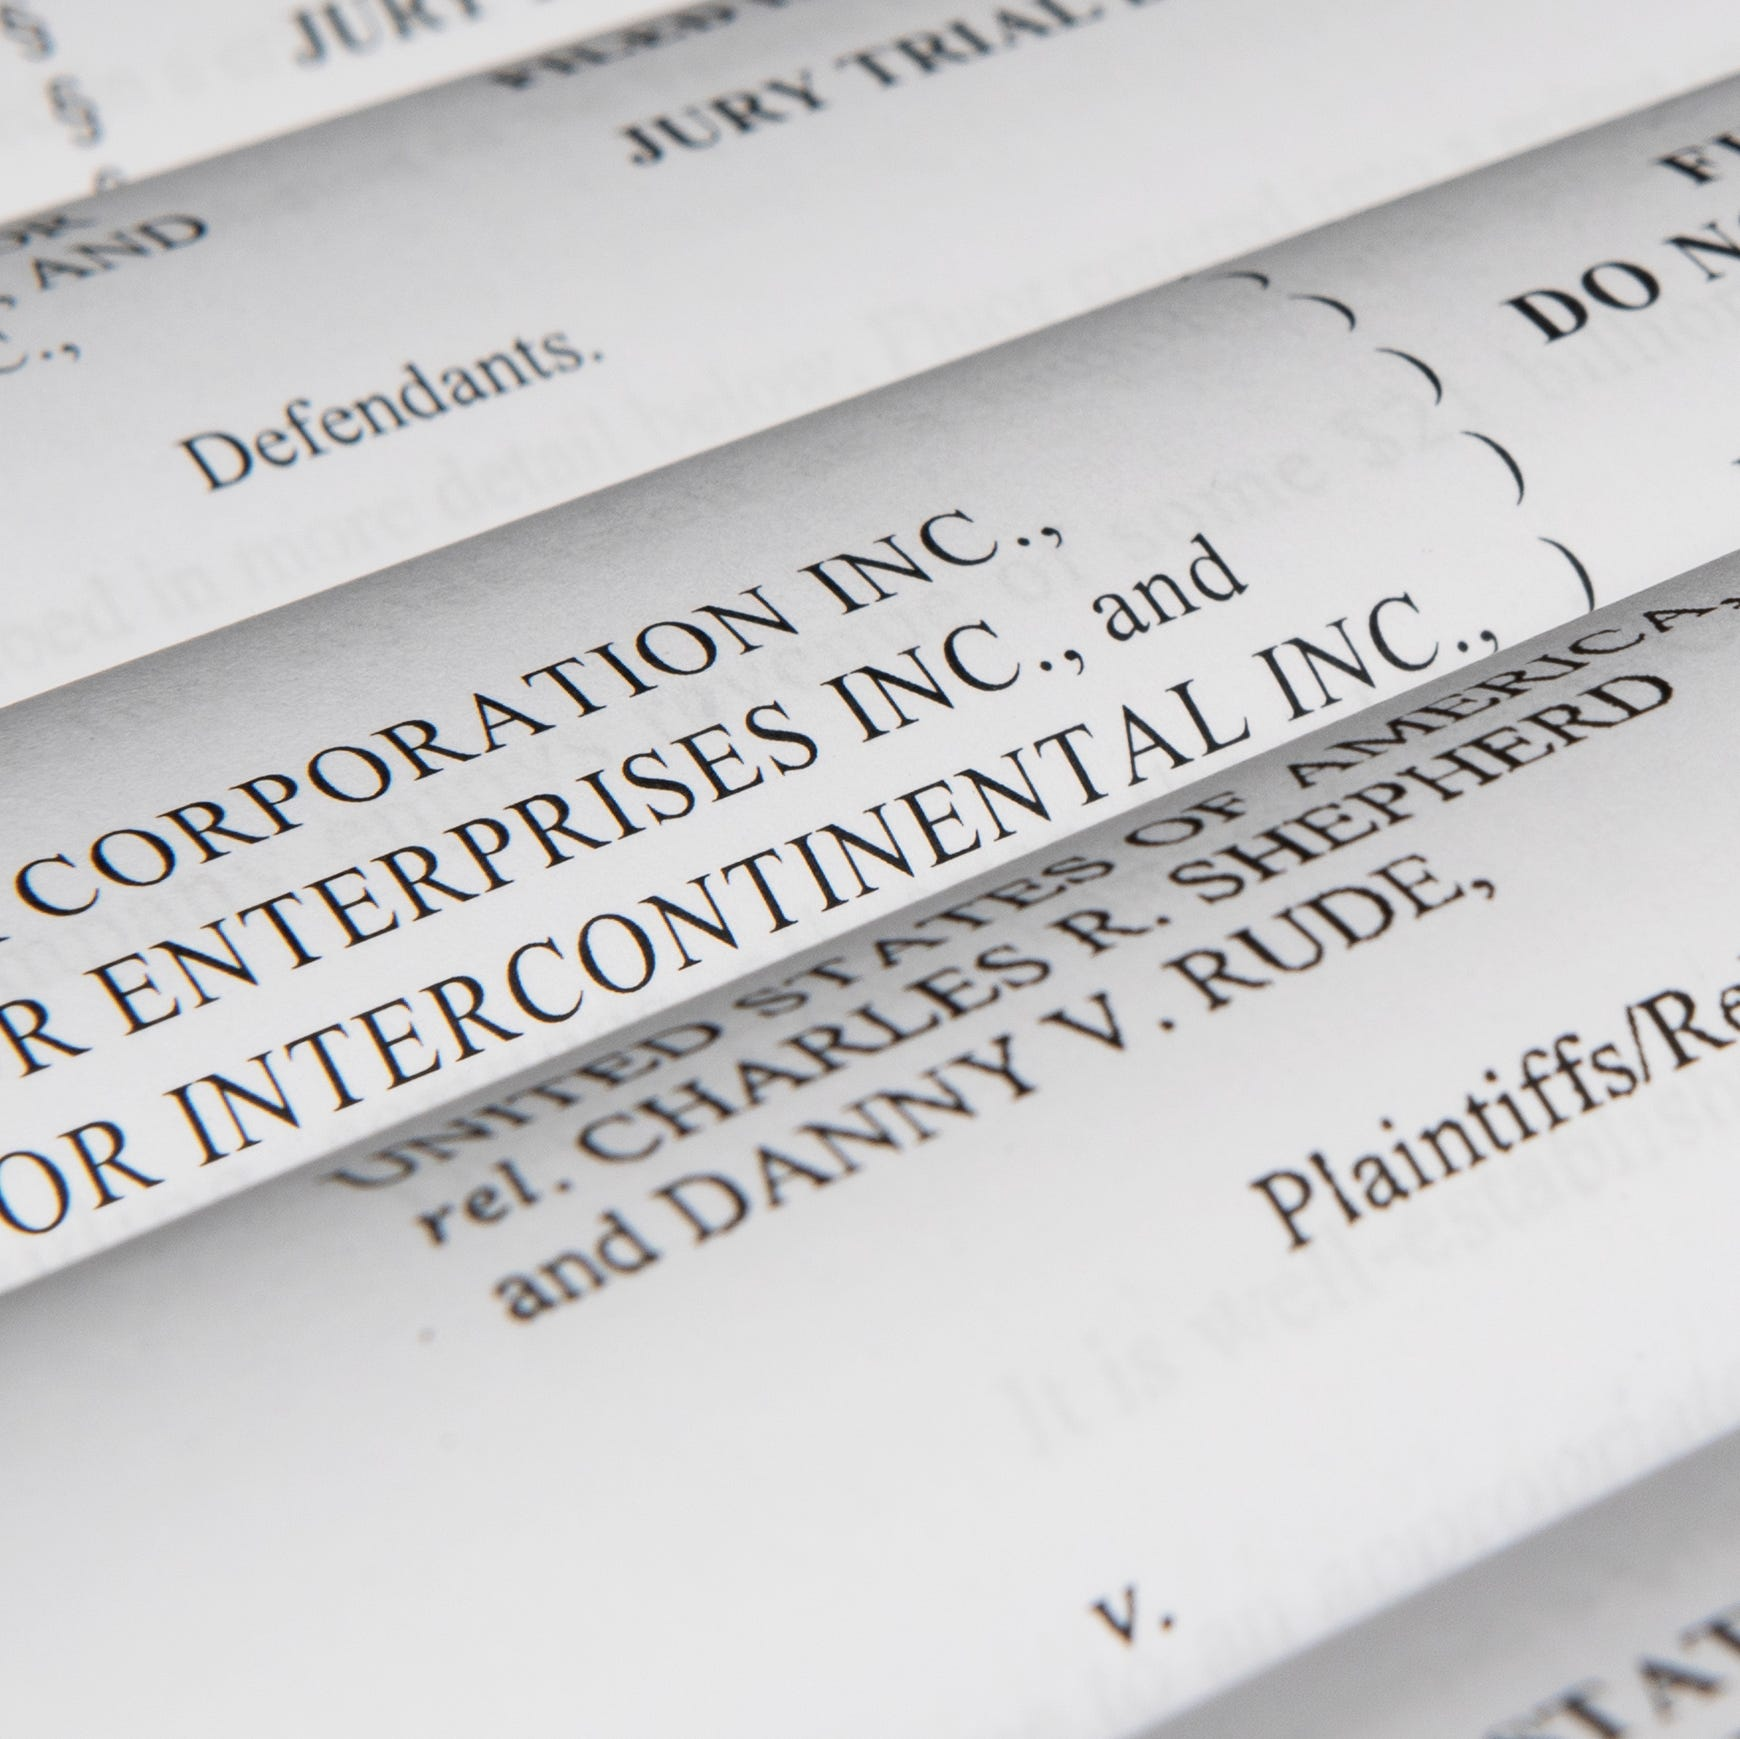 Fluor whistleblowers: Calls, audits name Greenville management in defense contract fraud